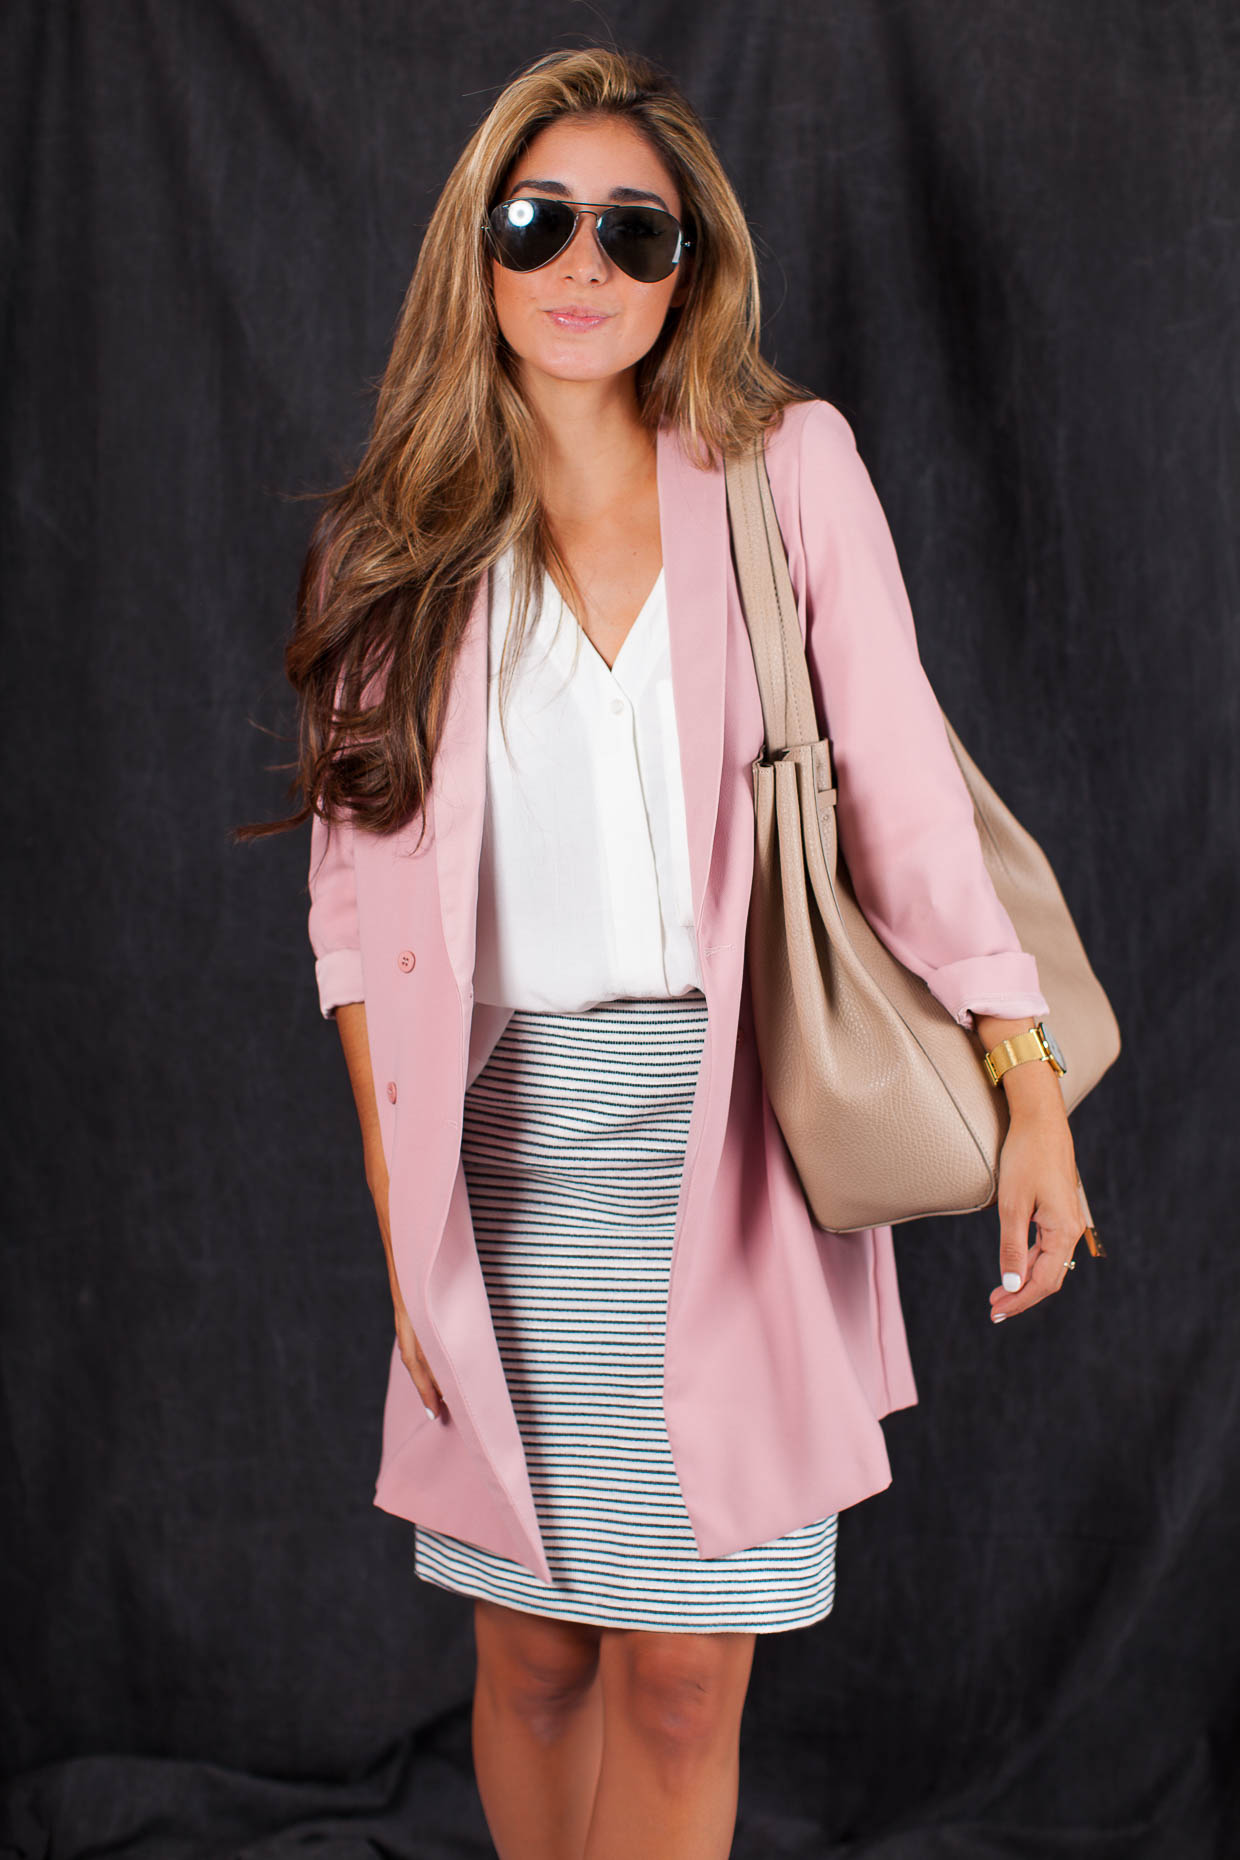 Business Casual Made Chic The Darling Detail